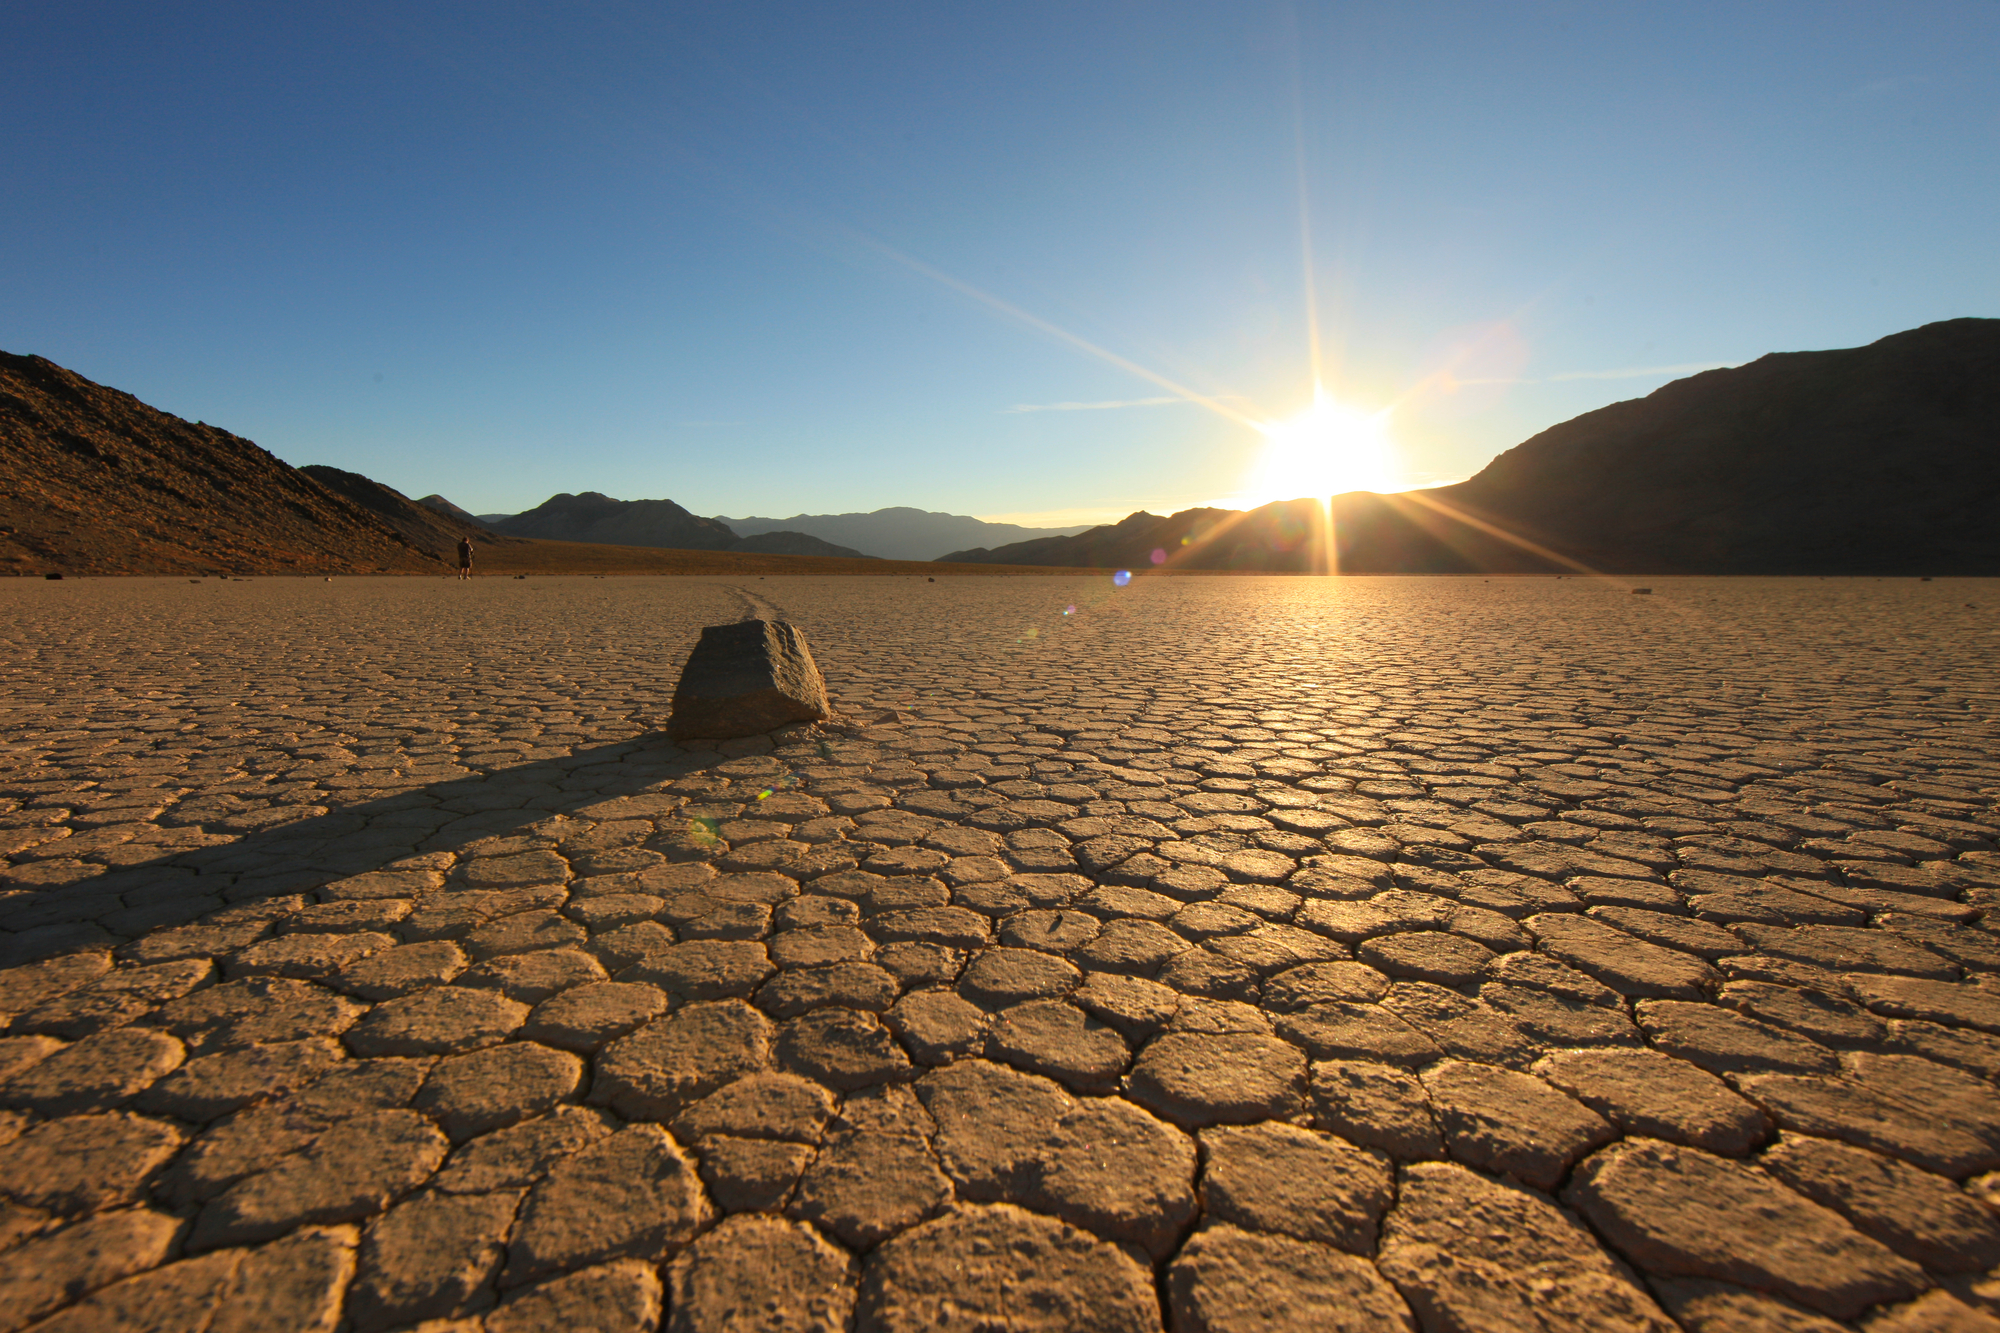 """U.S. West bracing for """"blowtorch-like"""" heatwave. Death Valley could reach 129 F"""